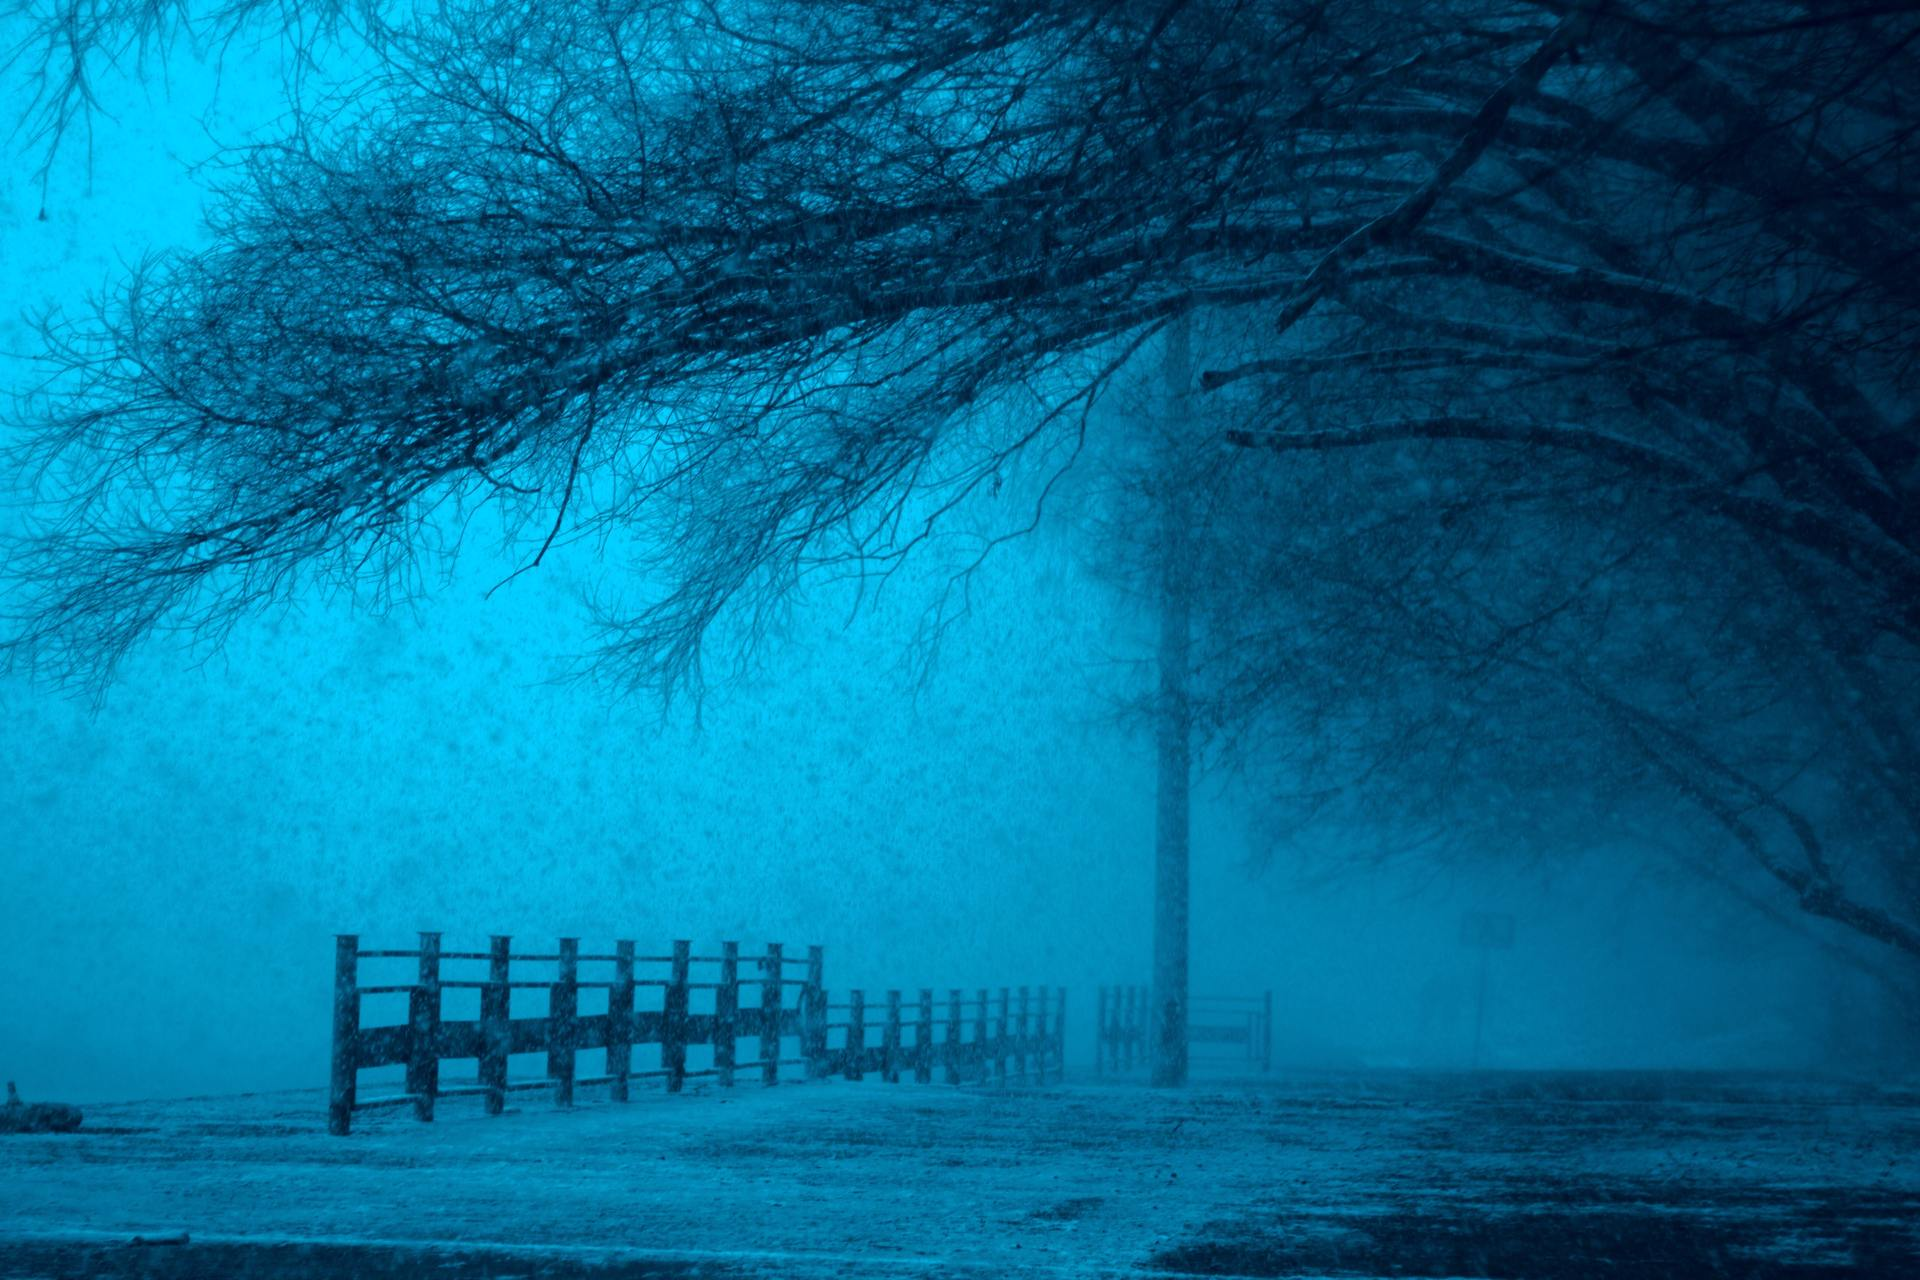 Wooden Fence Under Leafless Tree